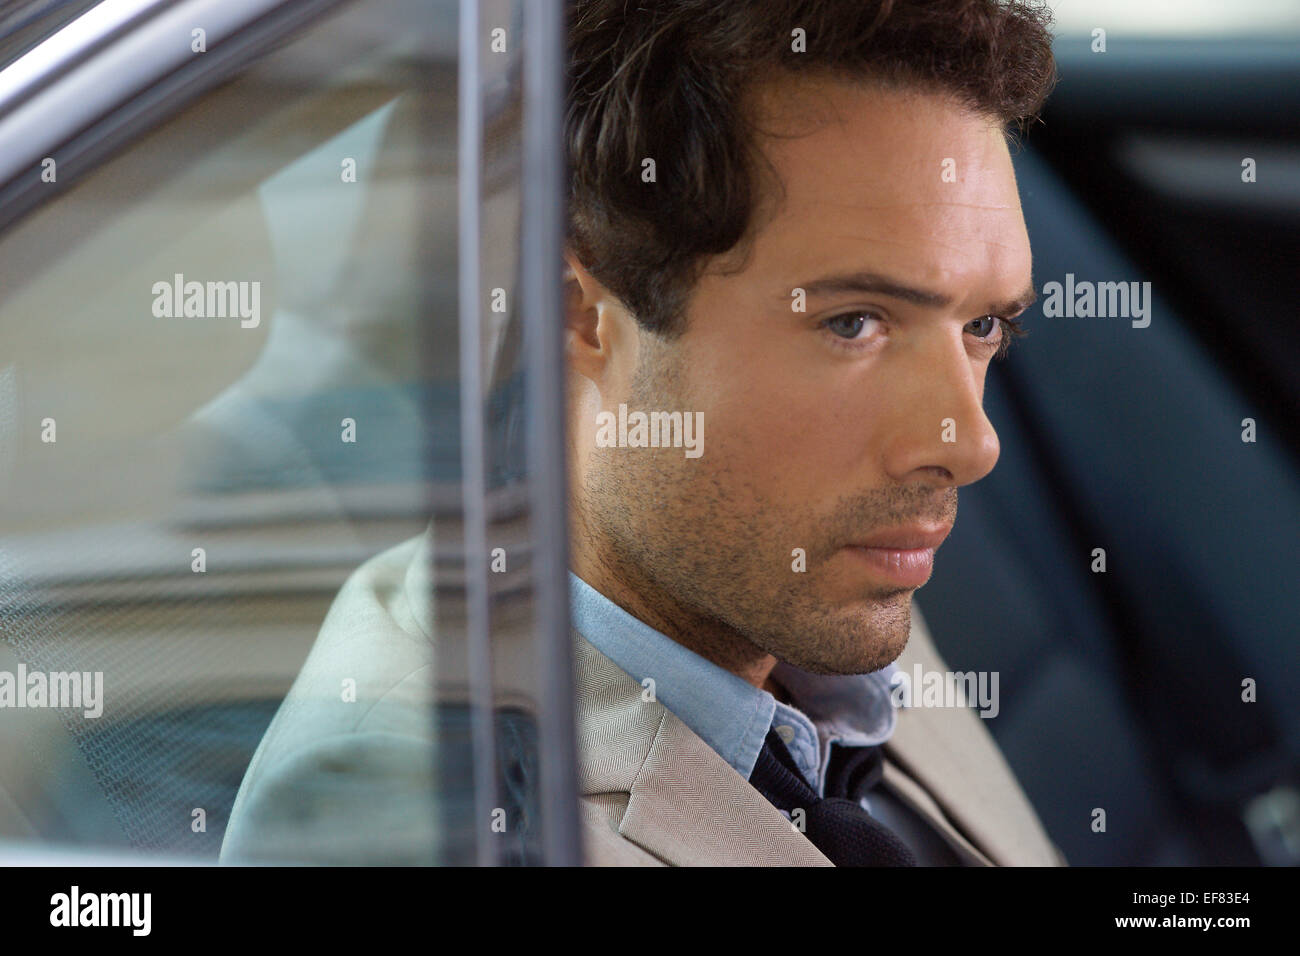 NICOLAS BEDOS LOVE IS IN THE AIR; AMOUR & TURBULENCES (2013) - Stock Image